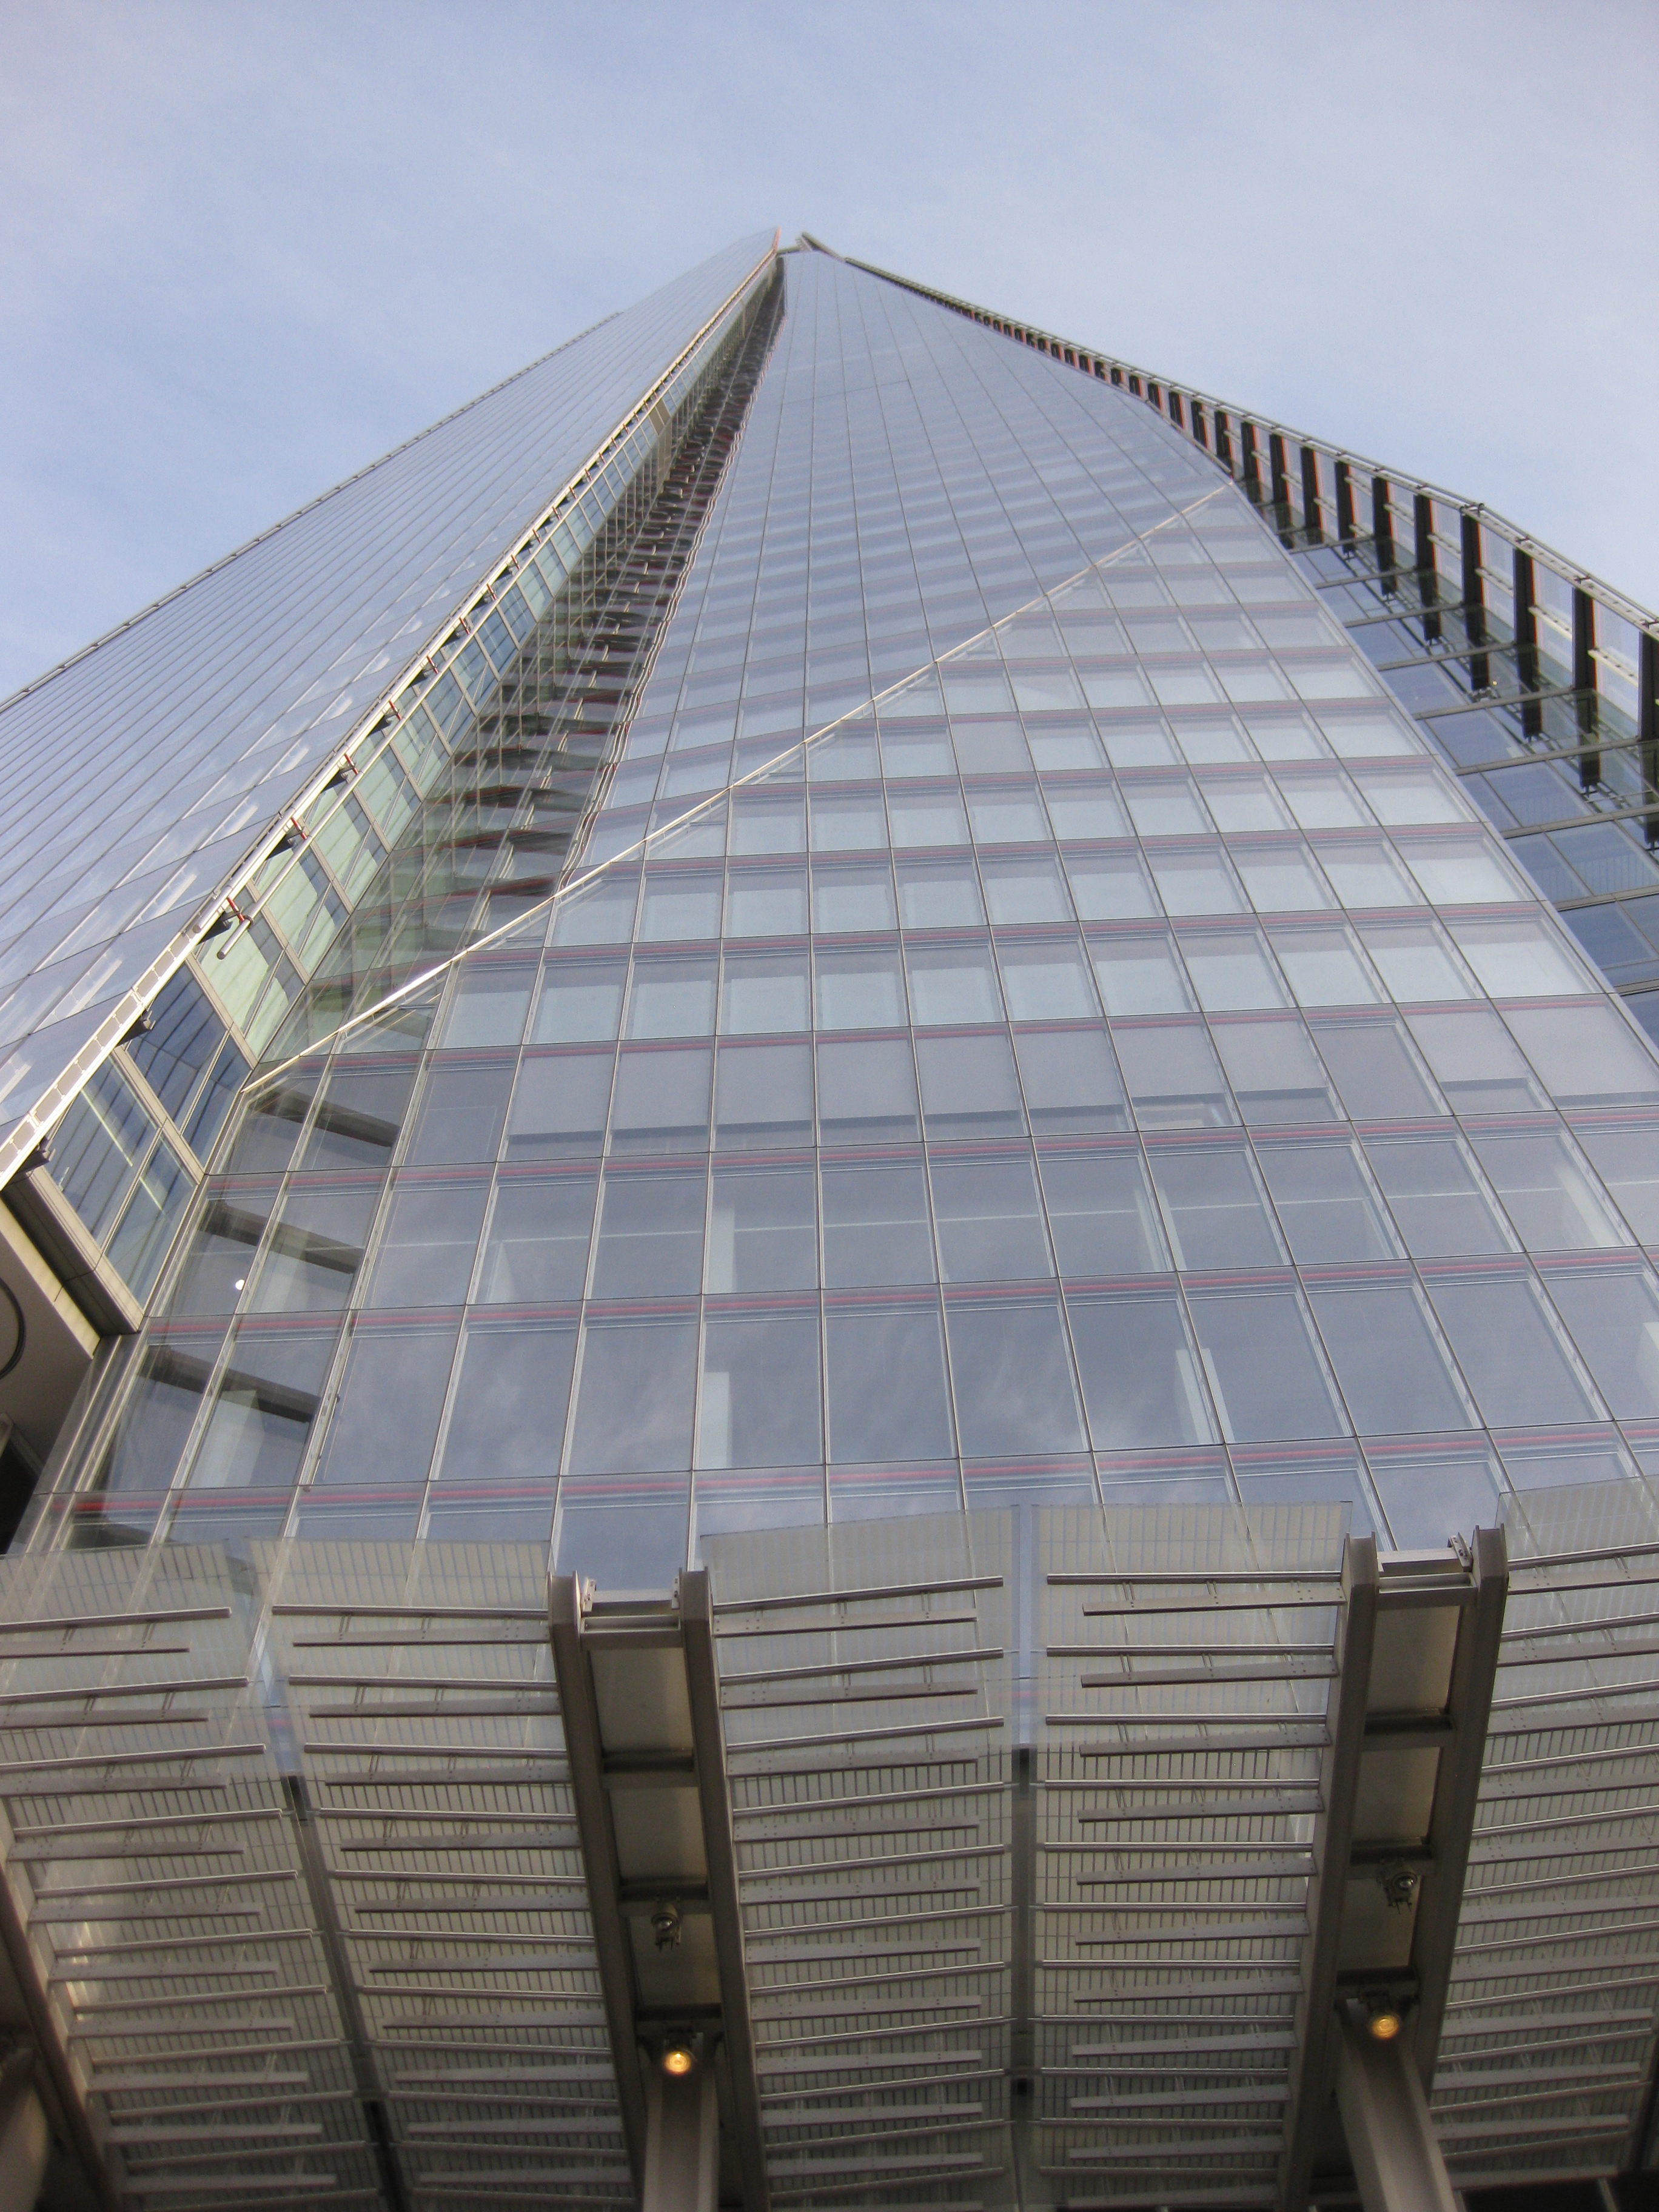 At the foot of The Shard, London